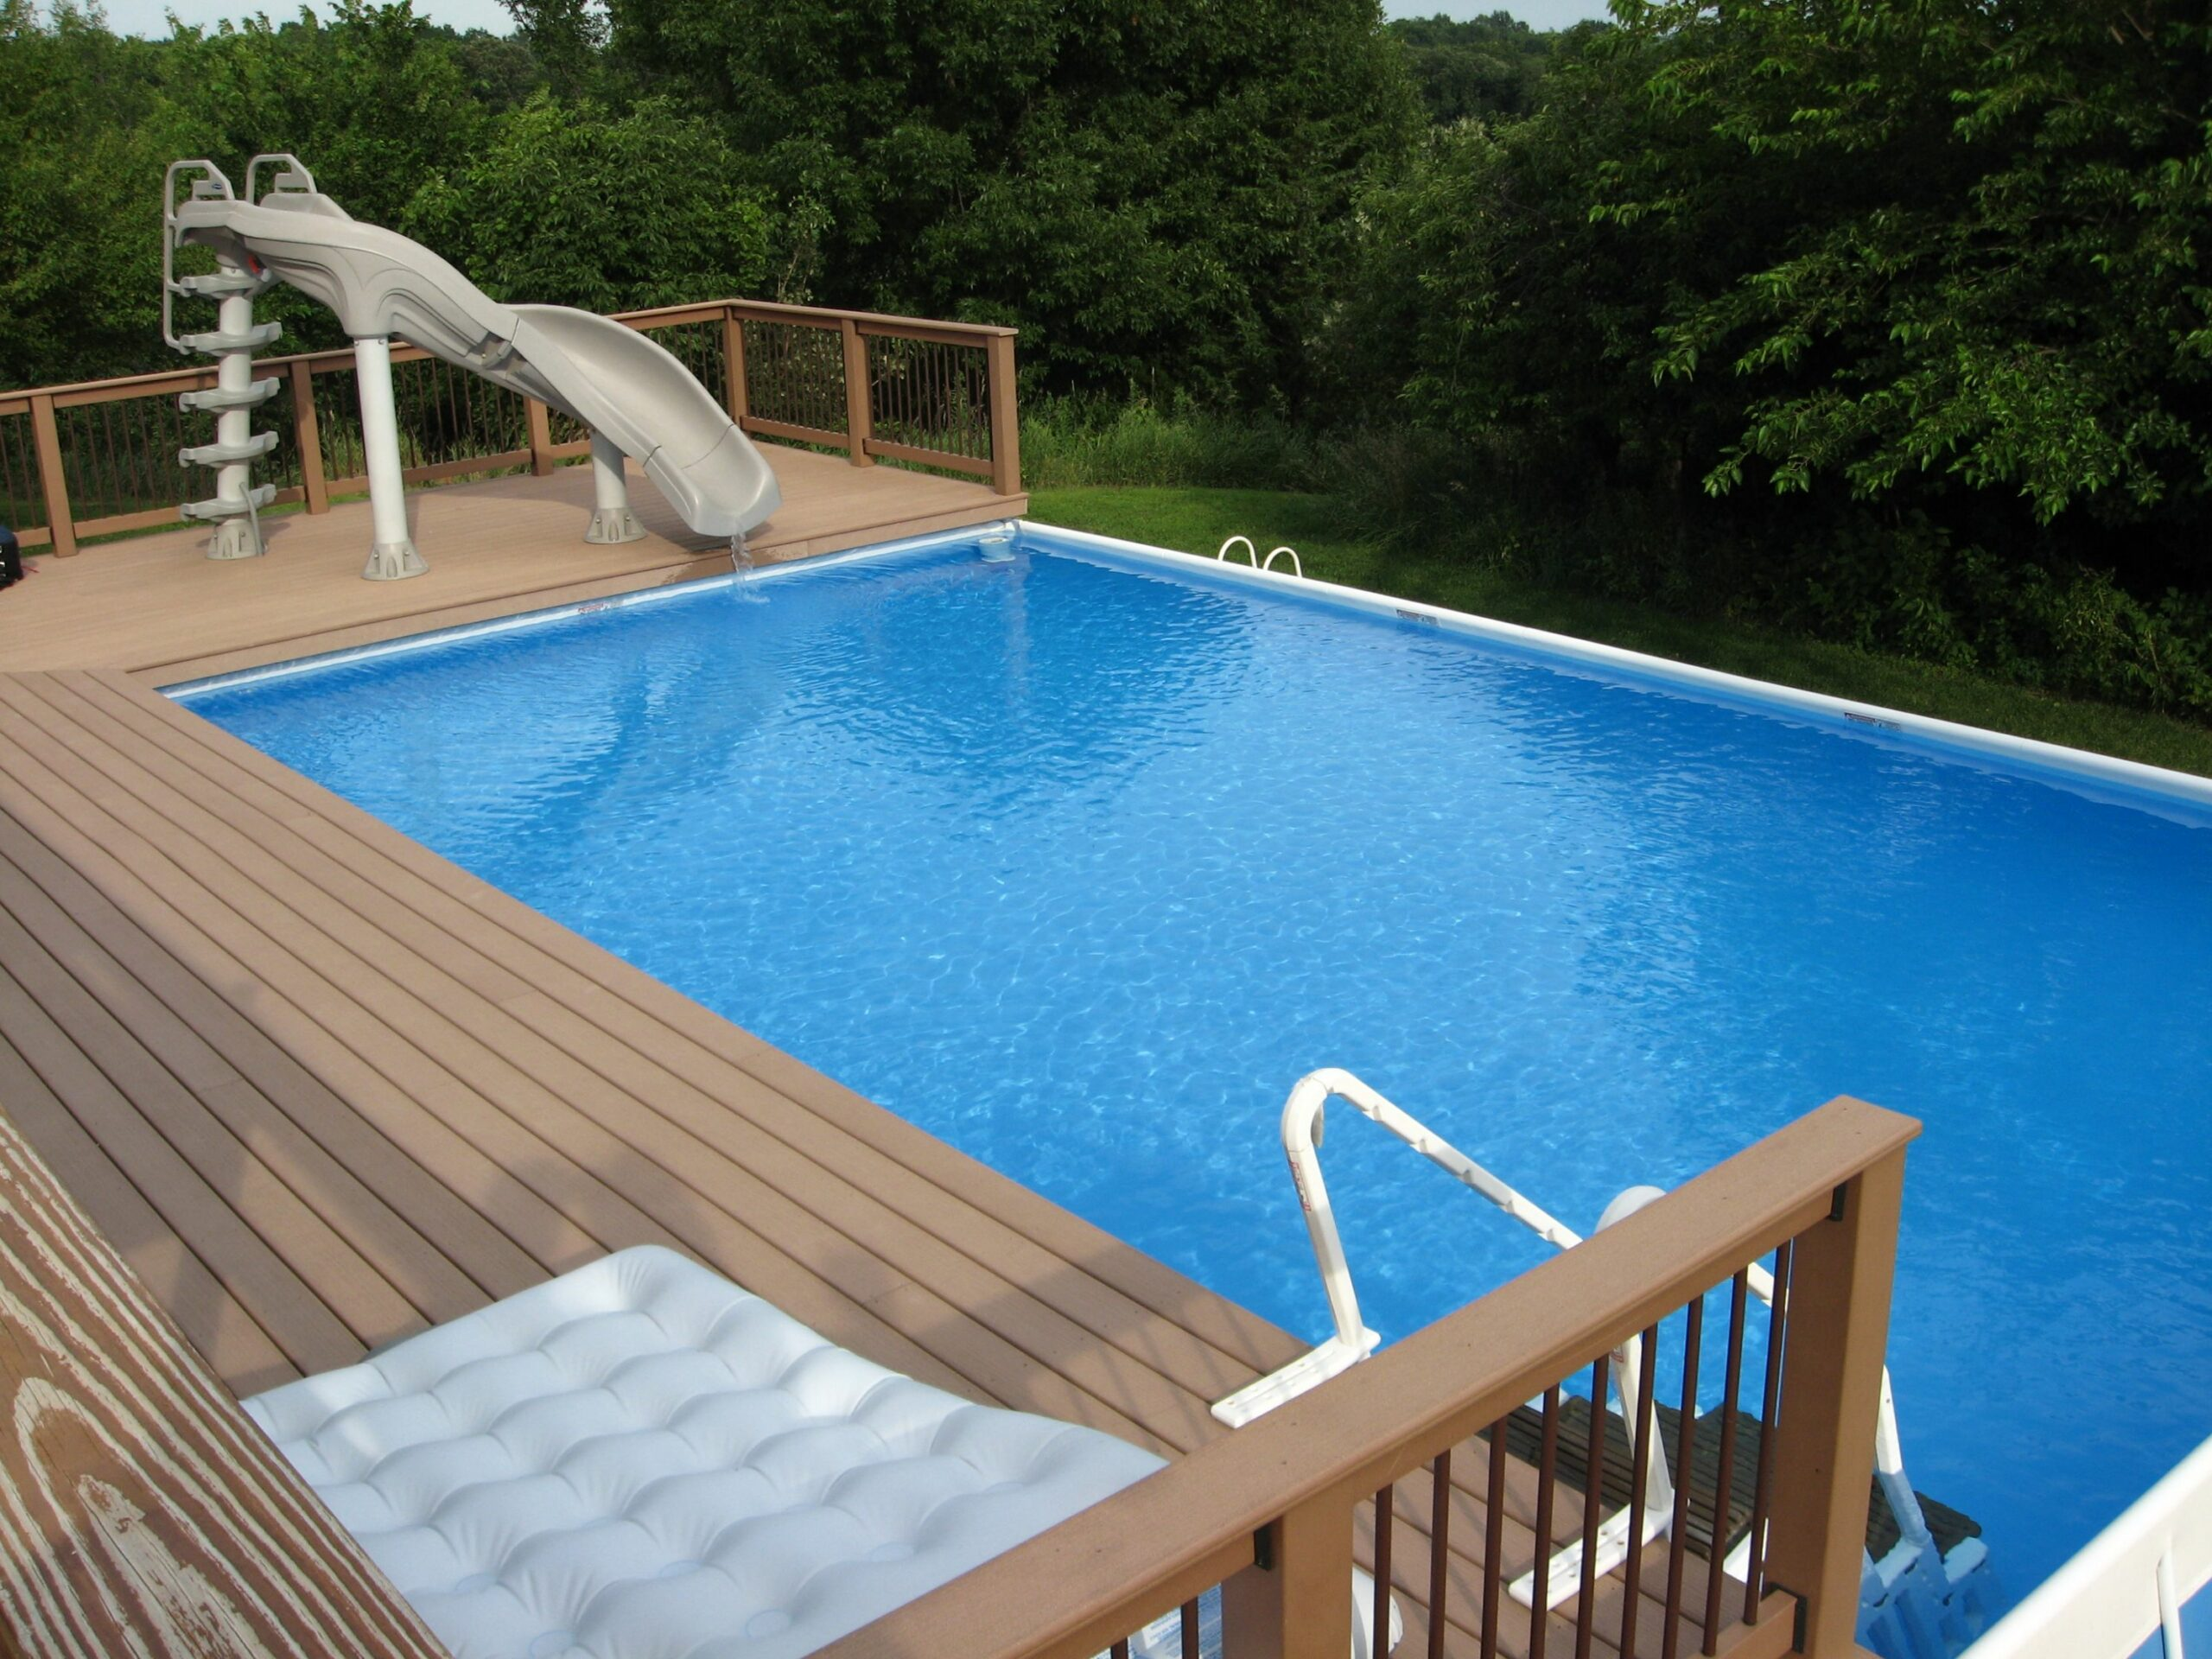 11 Best Above Ground Pools with Decks - pool enhancement ideas